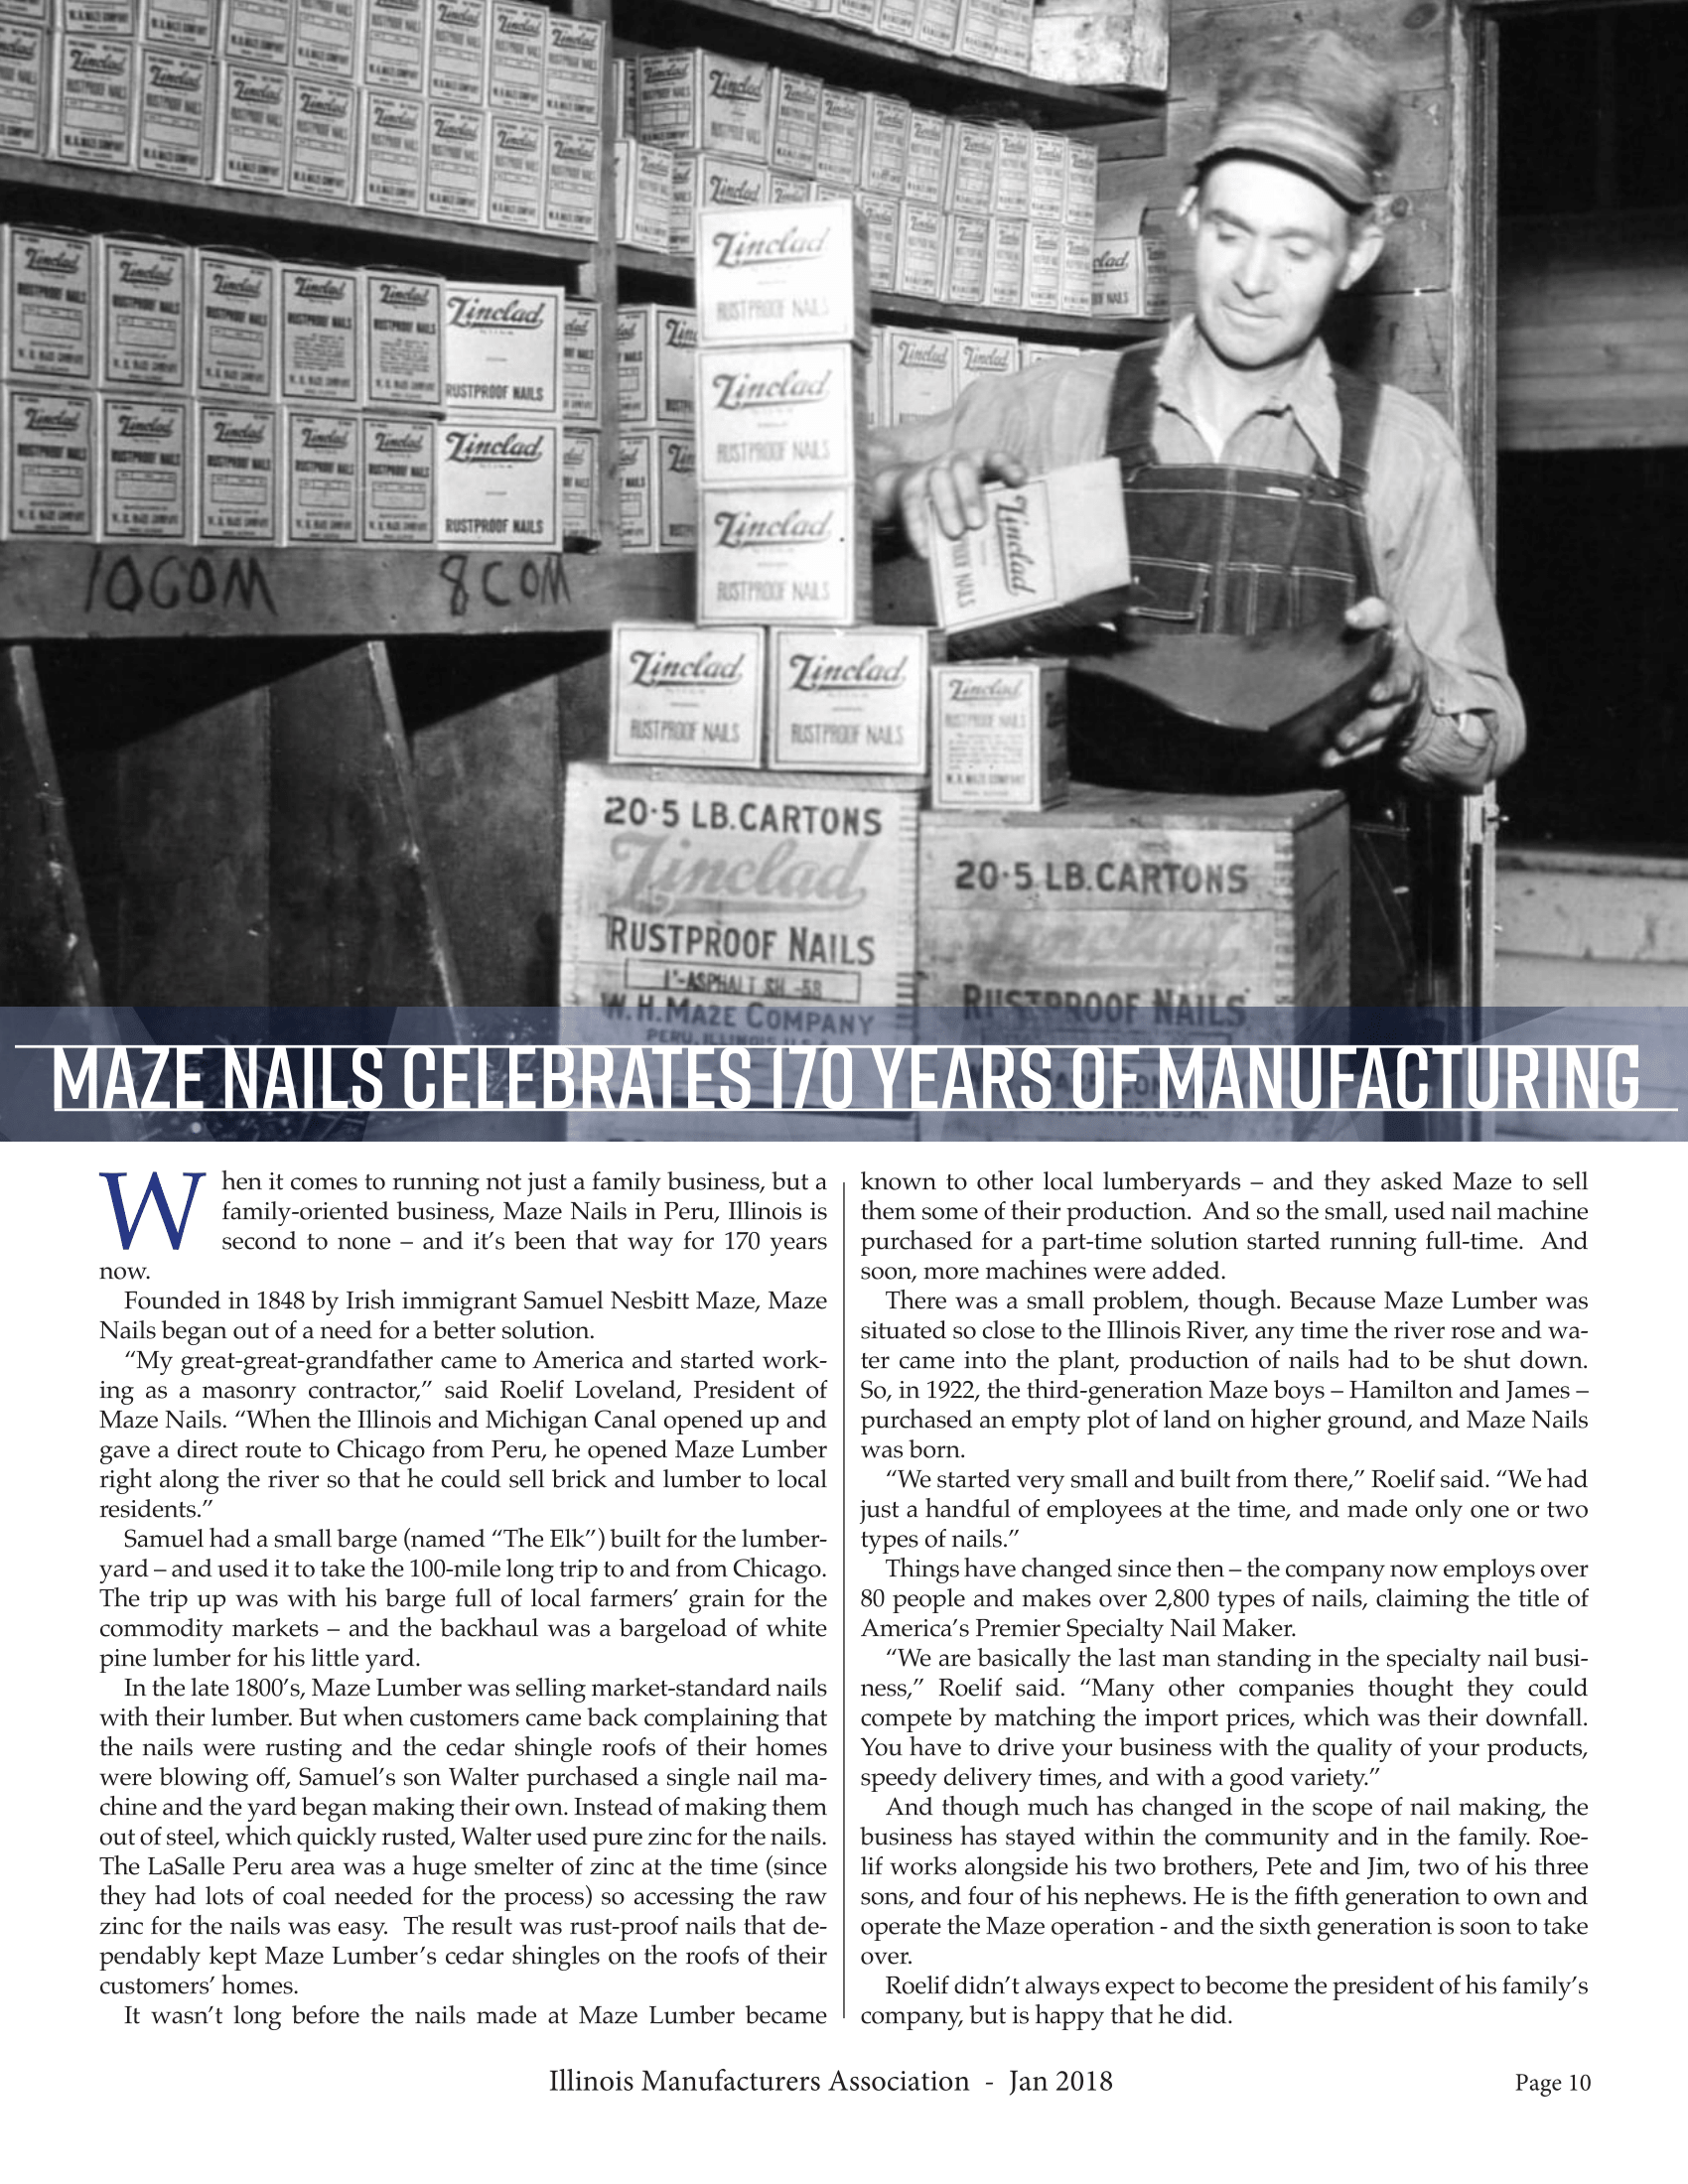 Maze Nails Celebrates 170 Years of Manufacturing